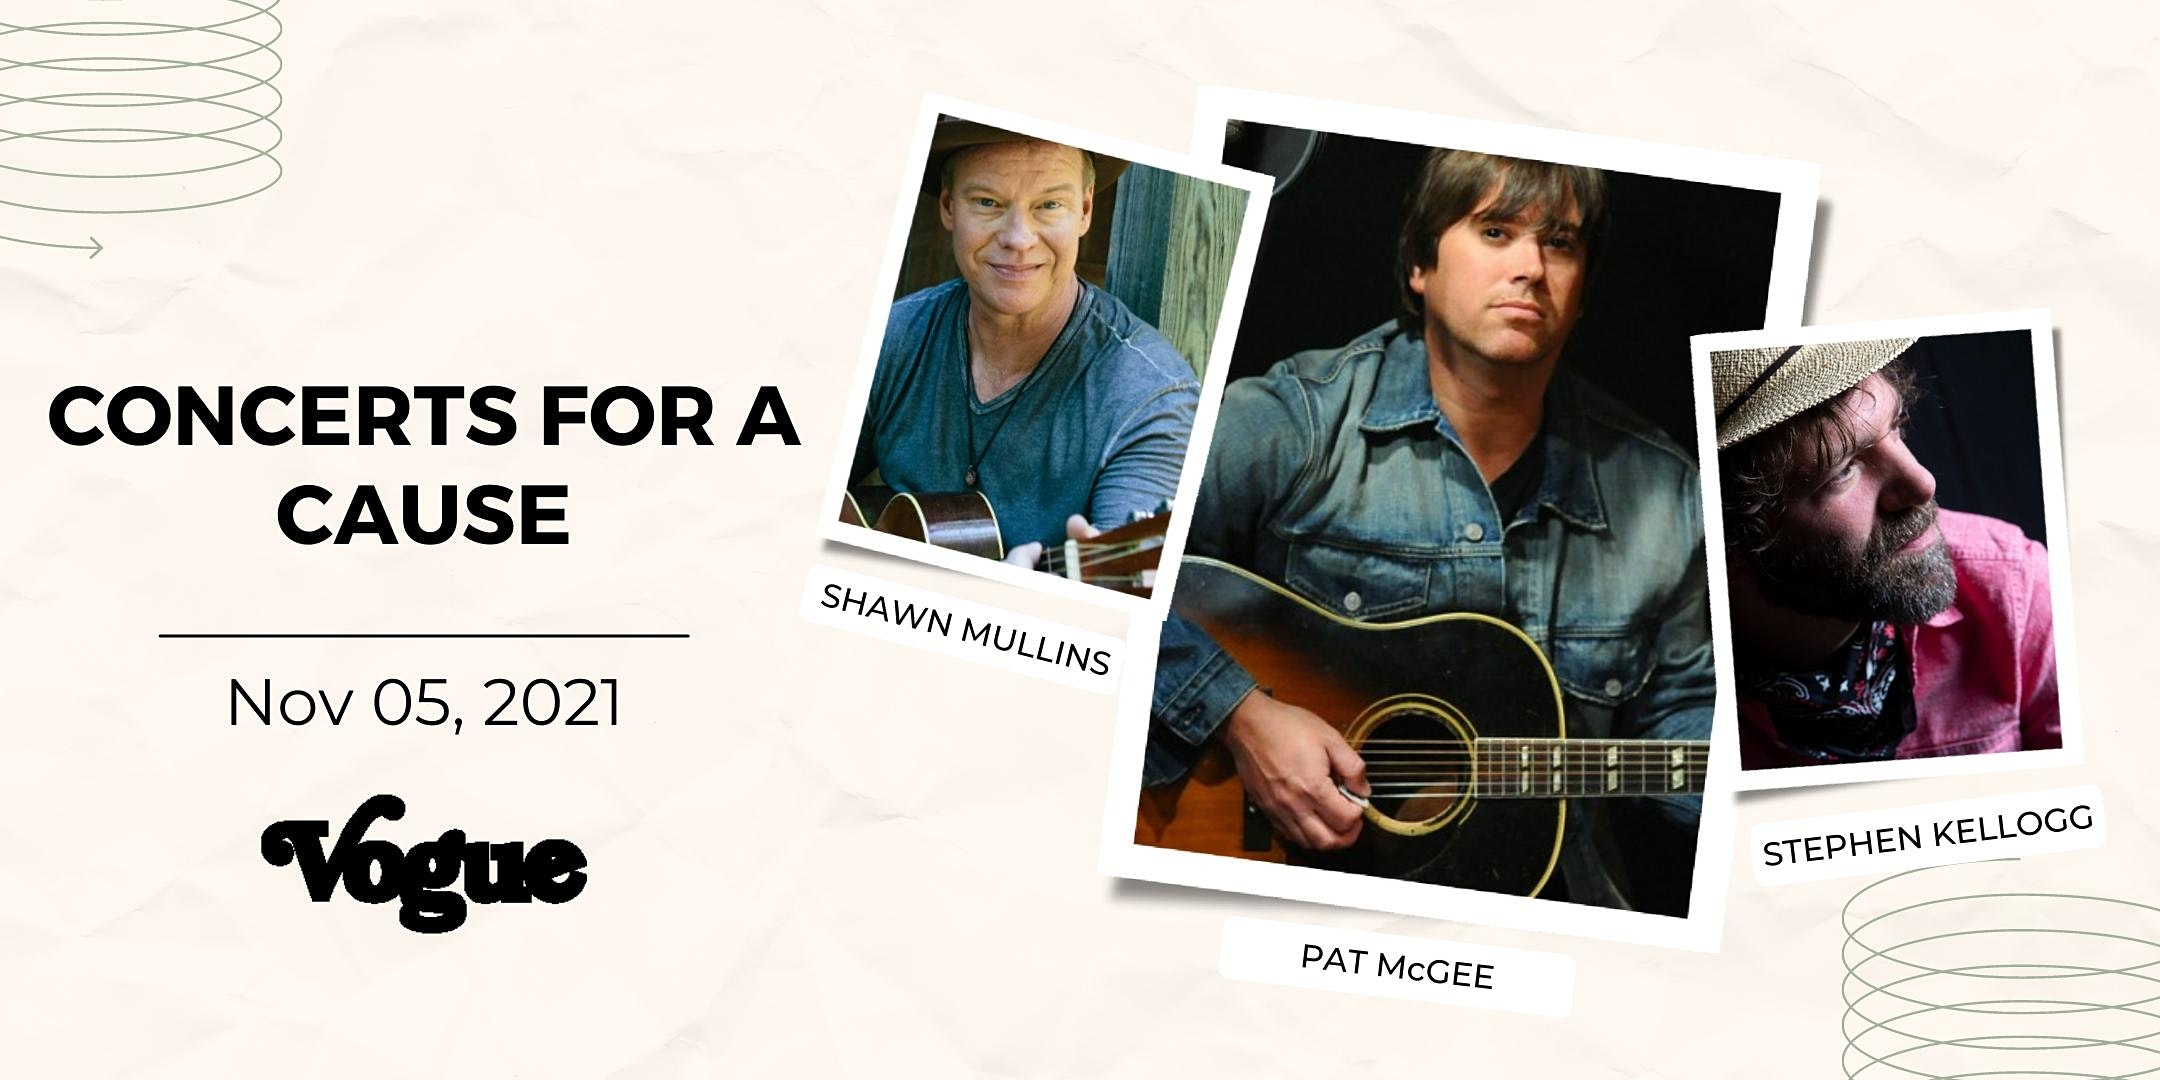 Concerts for a Cause with Pat McGee & Stephen Kellogg & Shawn Mullins